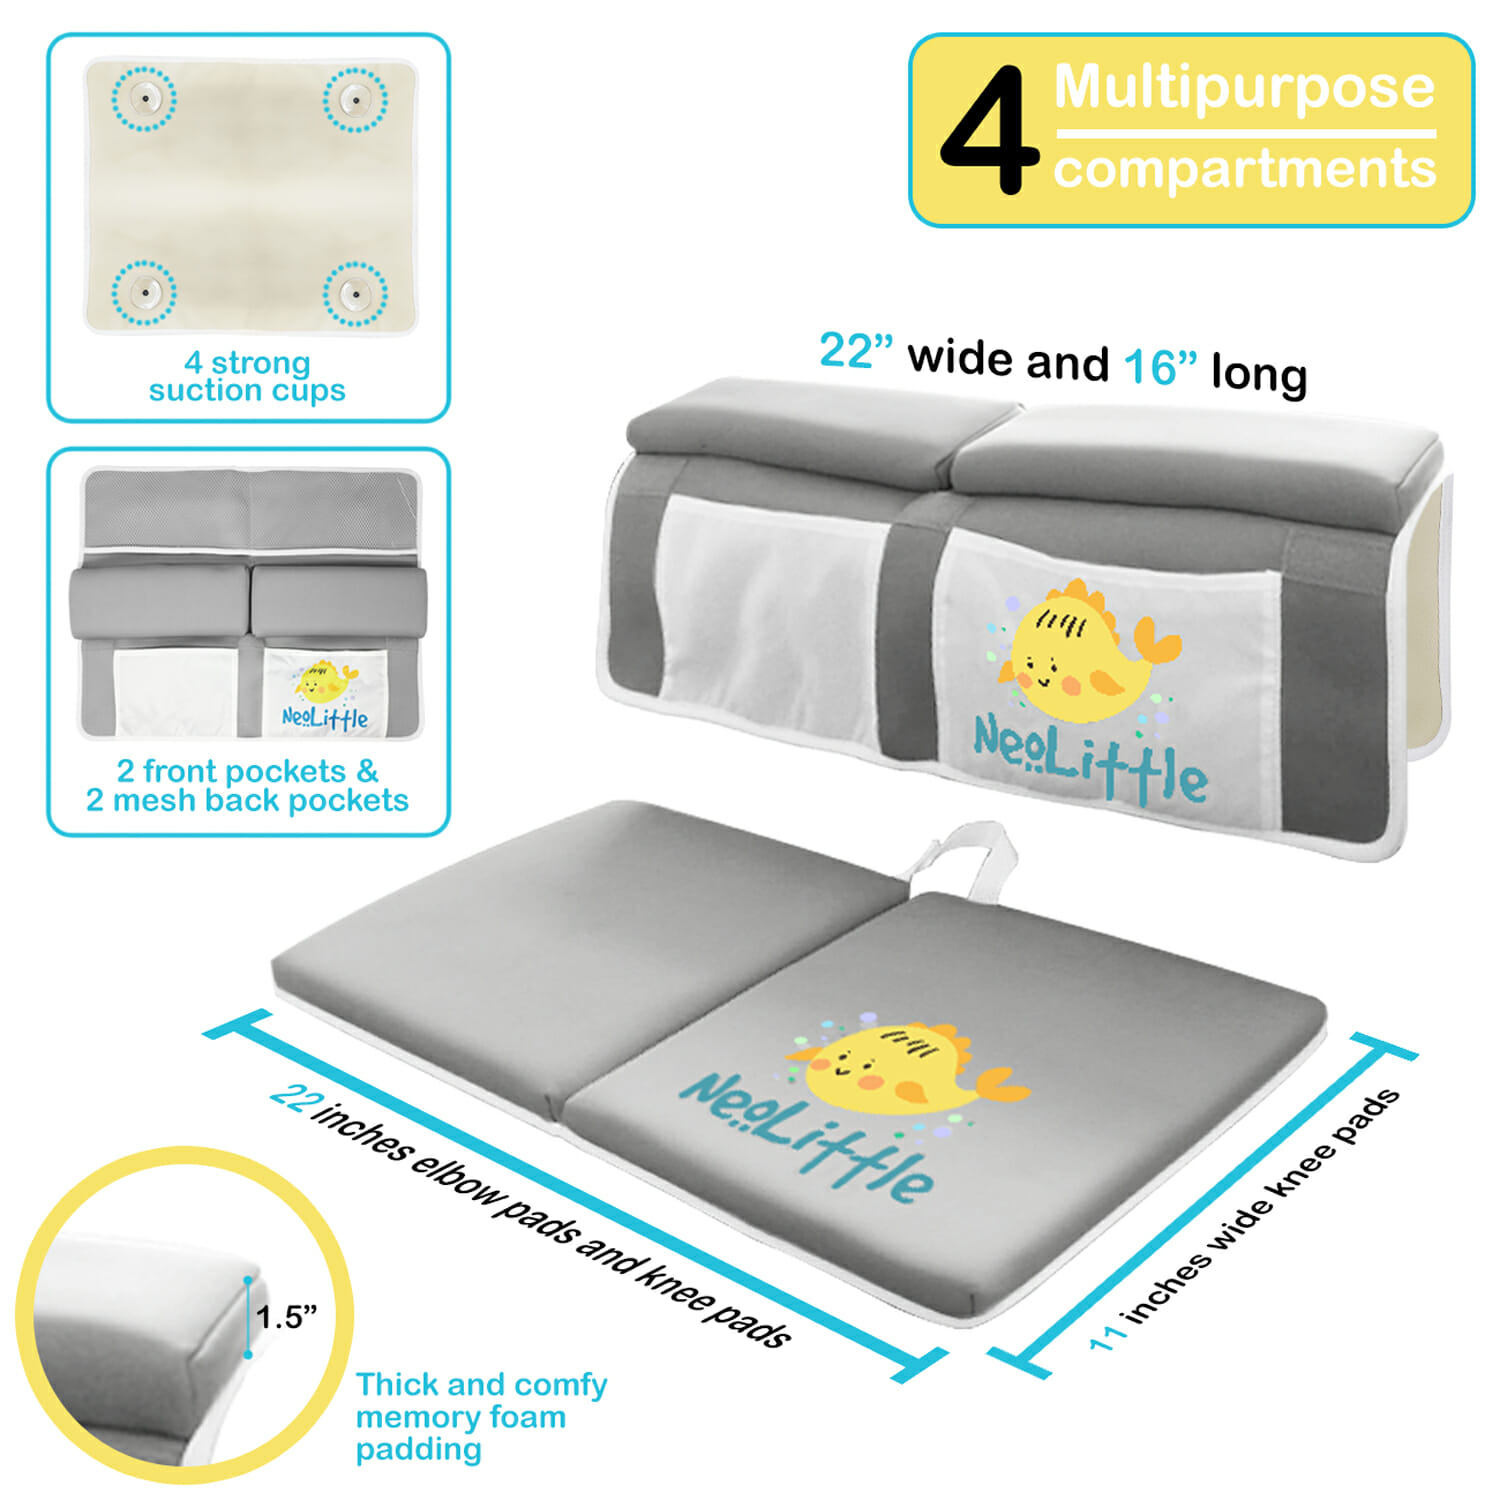 Padded Comfort Knee Mat & Arm Cushion for Bathing and Bathroom Time - 3